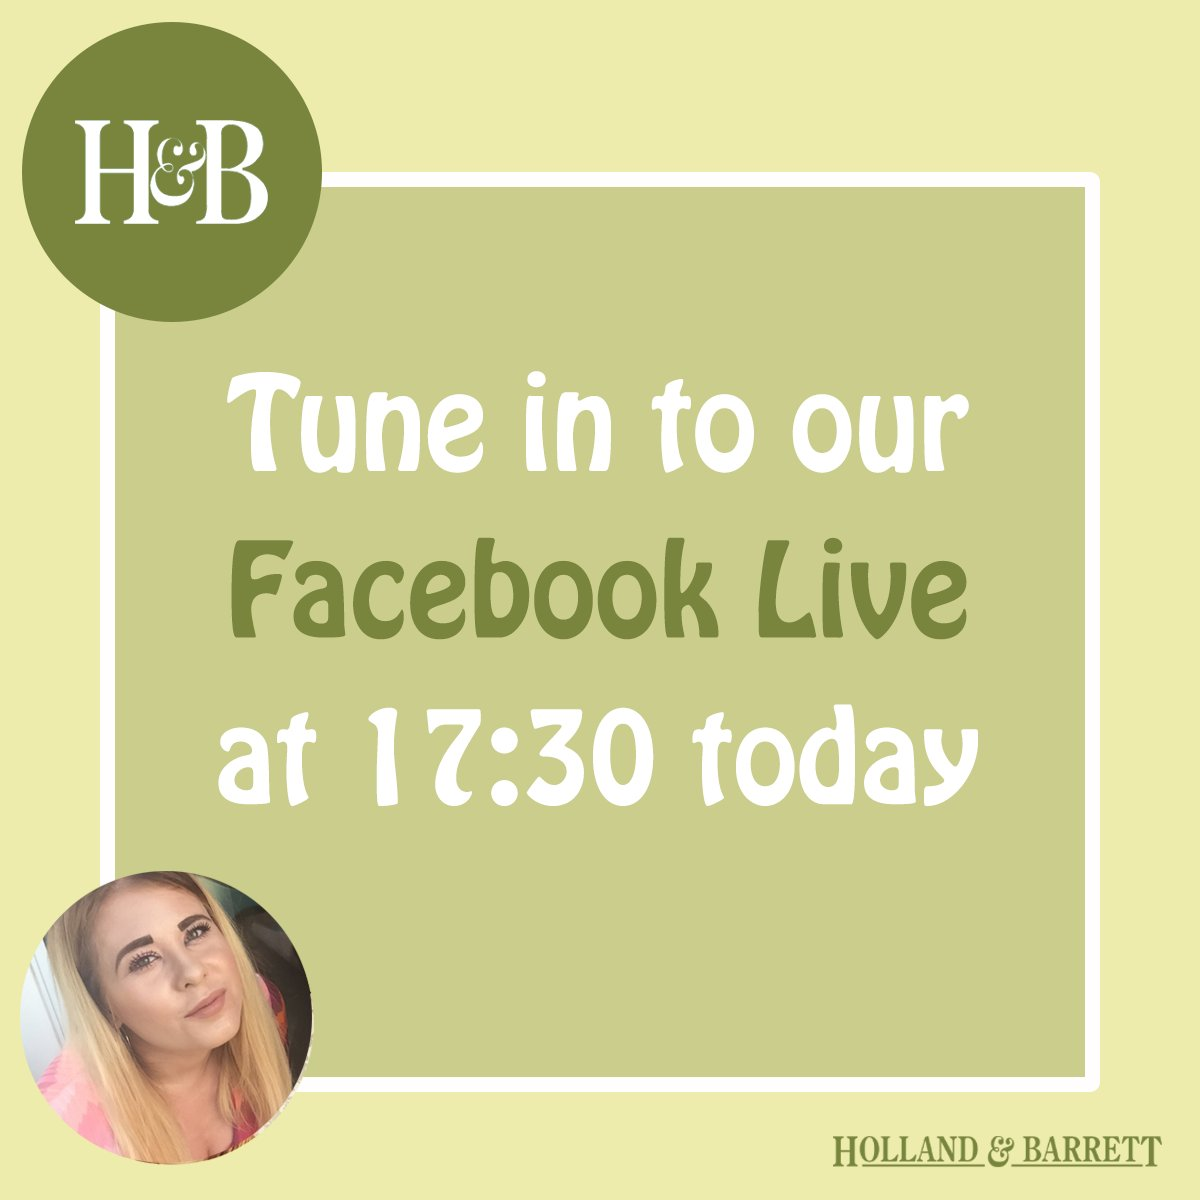 Tune into our Facebook Live at 17:30 this evening for expert advice & the chance to #win goodies! https://t.co/9b39BD3dWs